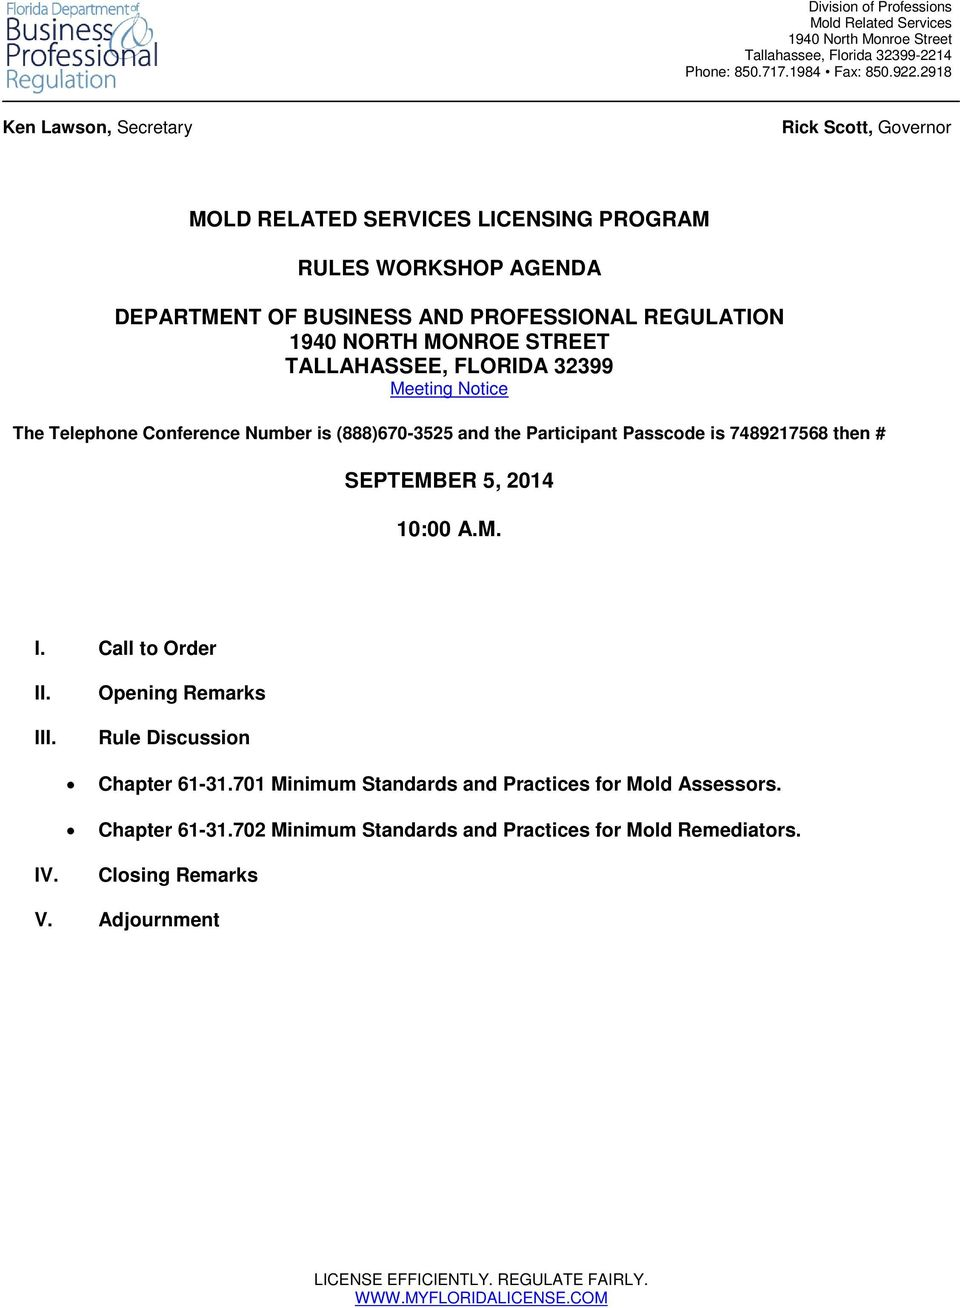 TALLAHASSEE, FLORIDA 32399 Meeting Notice The Telephone Conference Number is (888)670-3525 and the Participant Passcode is 7489217568 then # SEPTEMBER 5, 2014 10:00 A.M. I. Call to Order II. III.